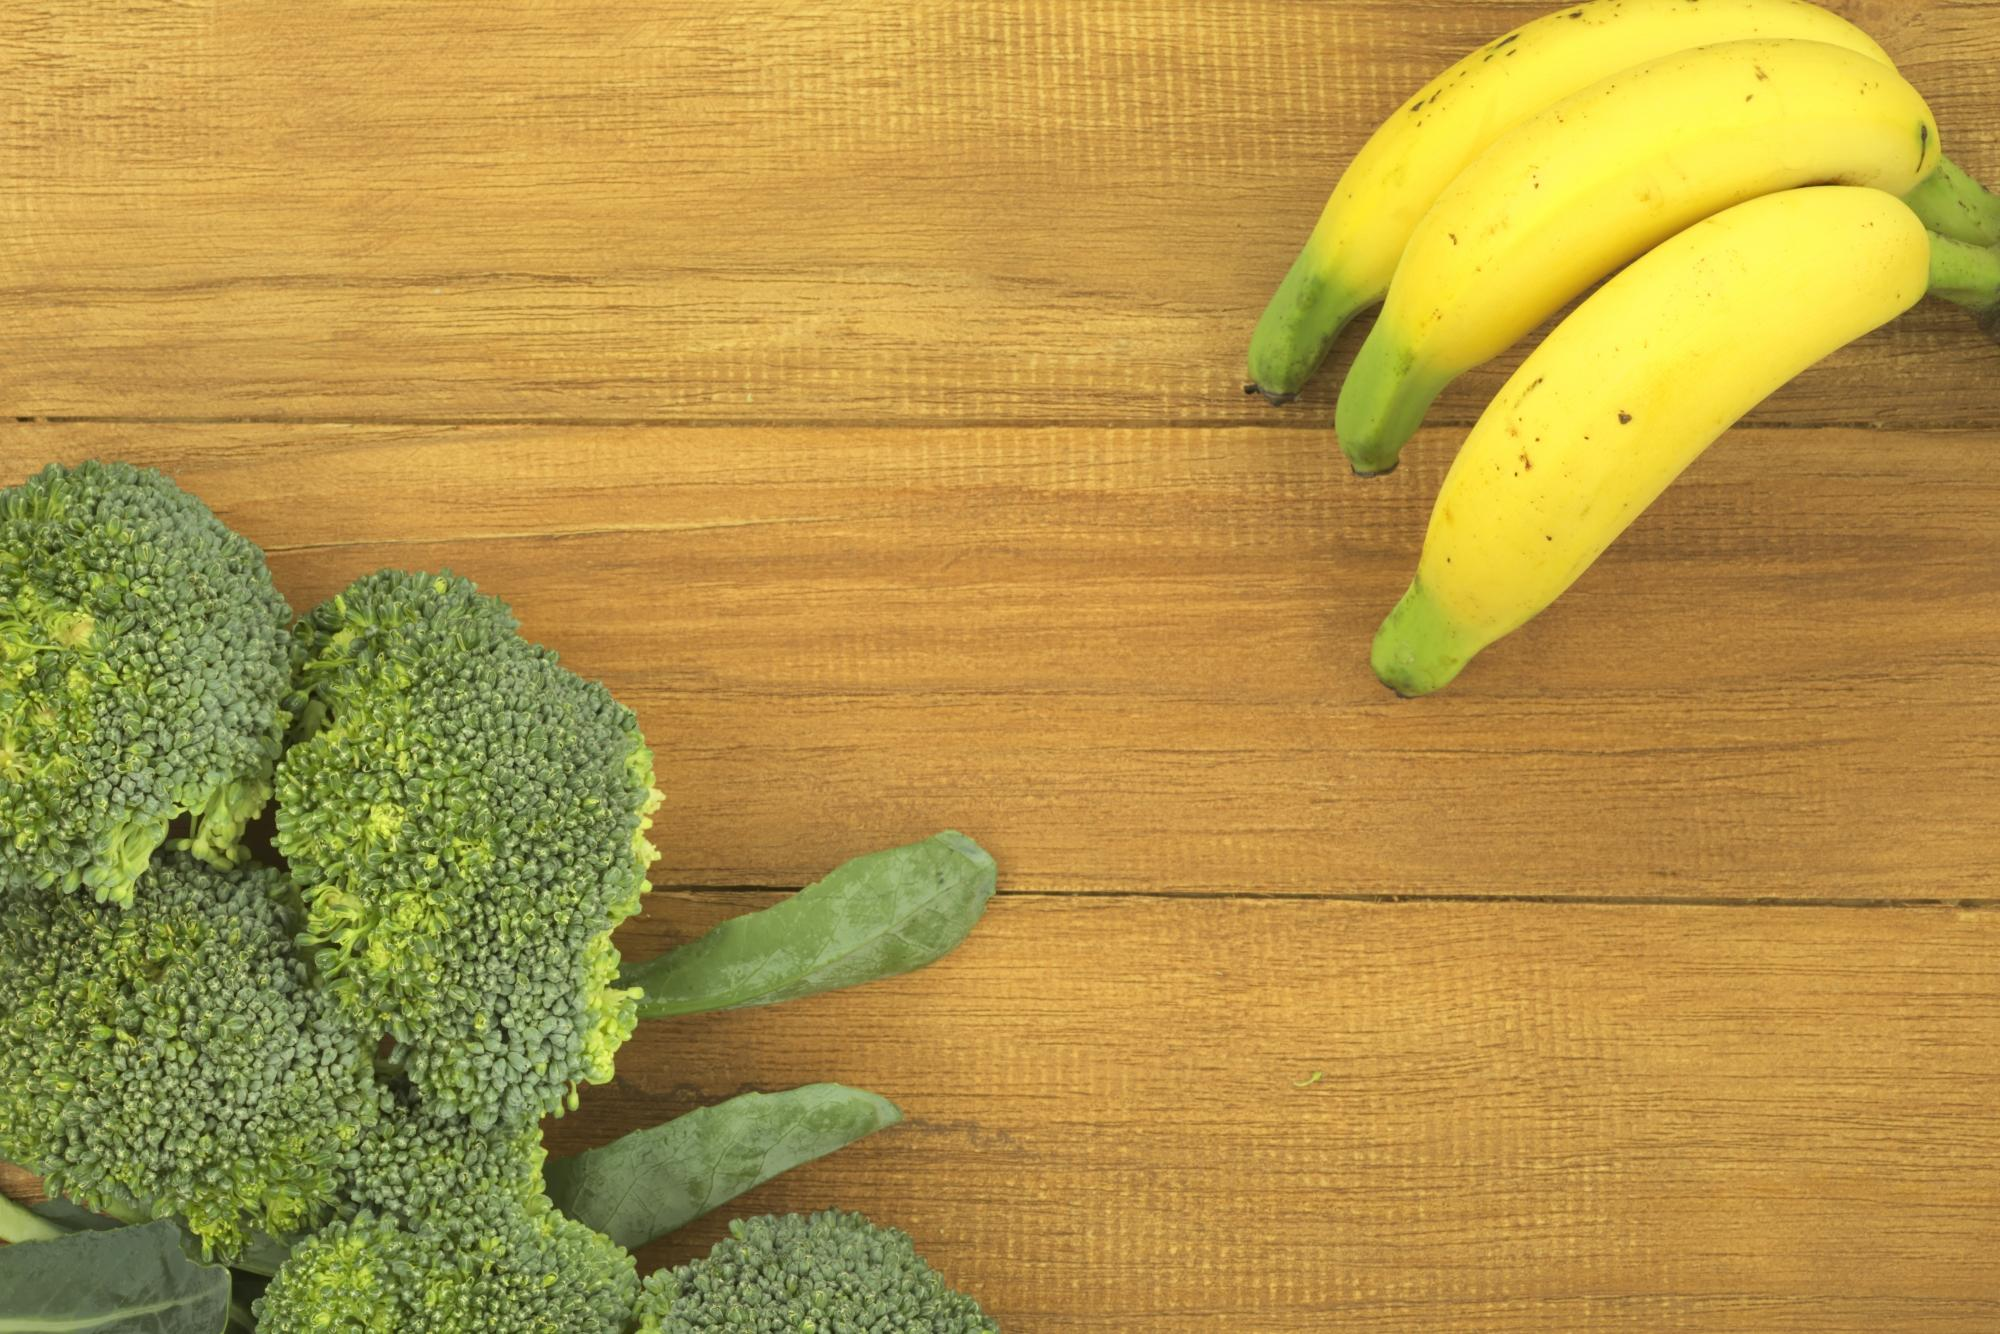 bananas and broccoli on wooden surface